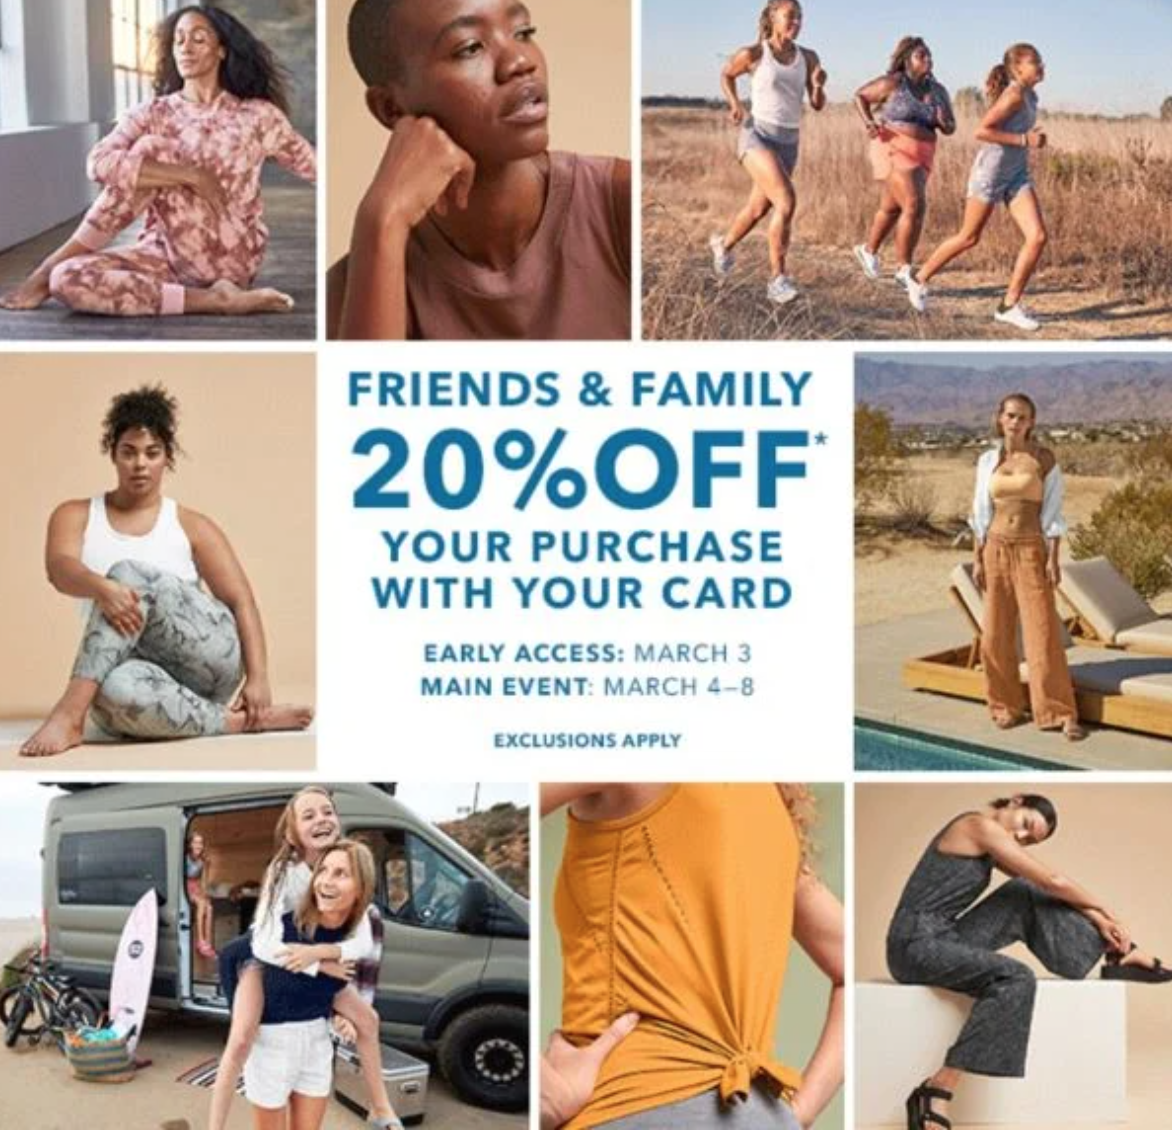 Athleta Family and Friends Event at Mellody Farms in Vernon Hills